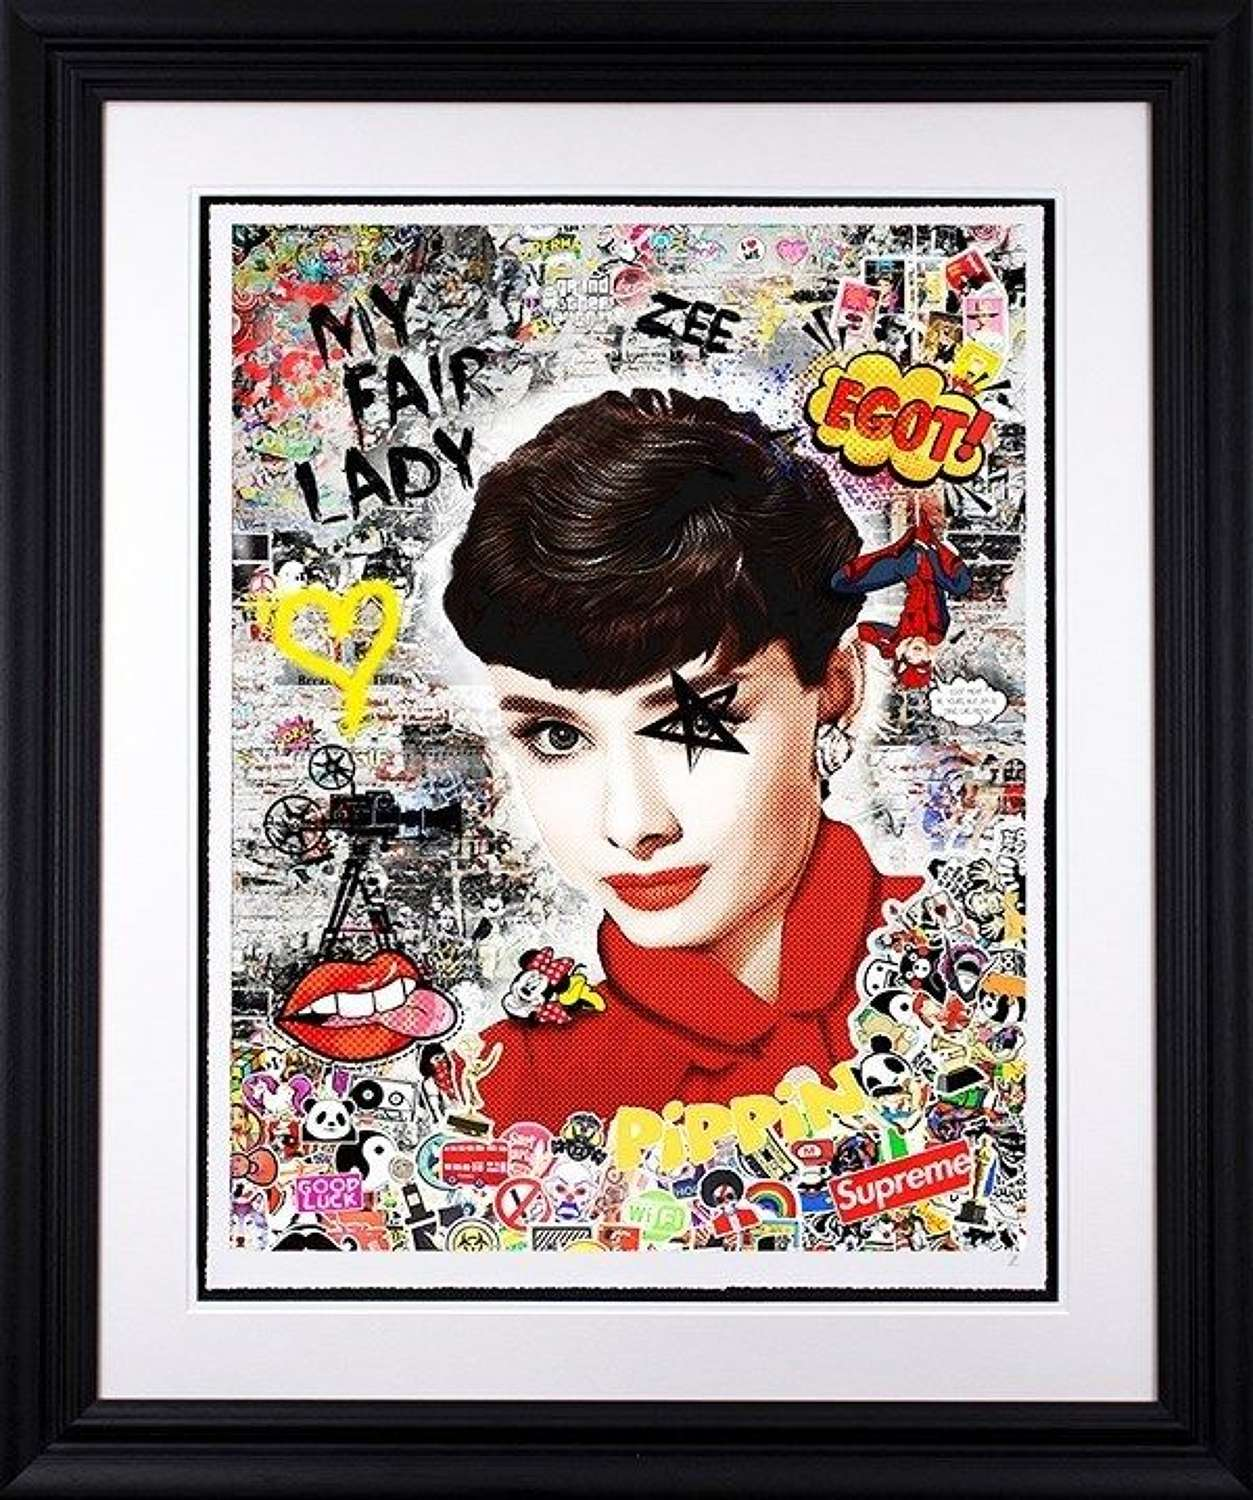 My Fair Lady - Framed Art Print by Zee